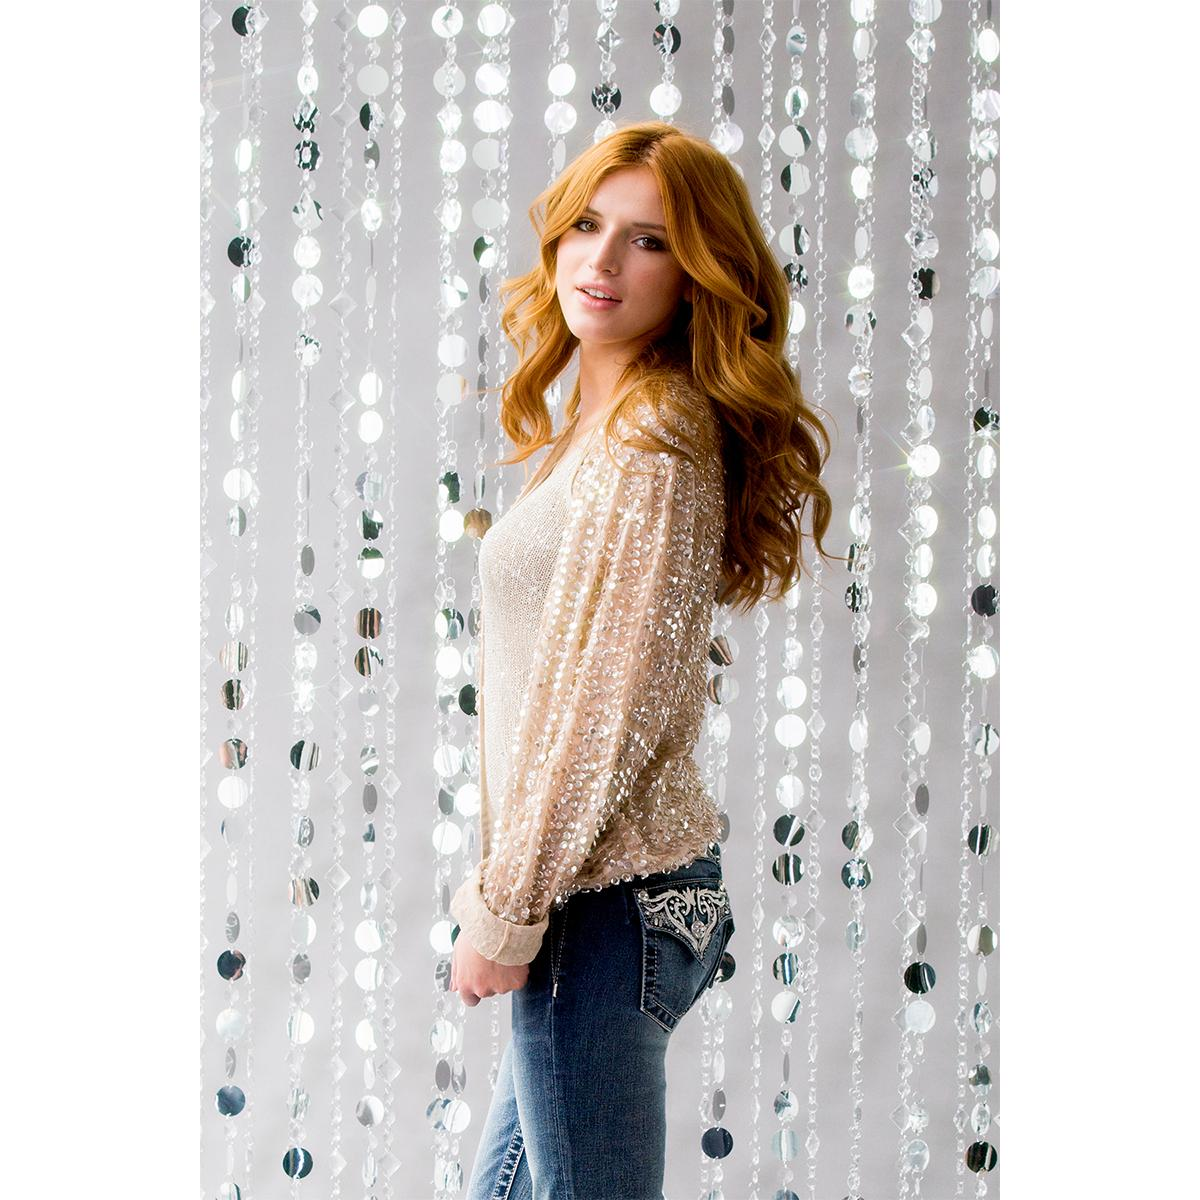 #LetYourselfShine in the new Royal Intrigue #MissMeJeans, as seen on @bellathorne. xox http://t.co/qDFZ5Zzr6Z http://t.co/hocwADINw6